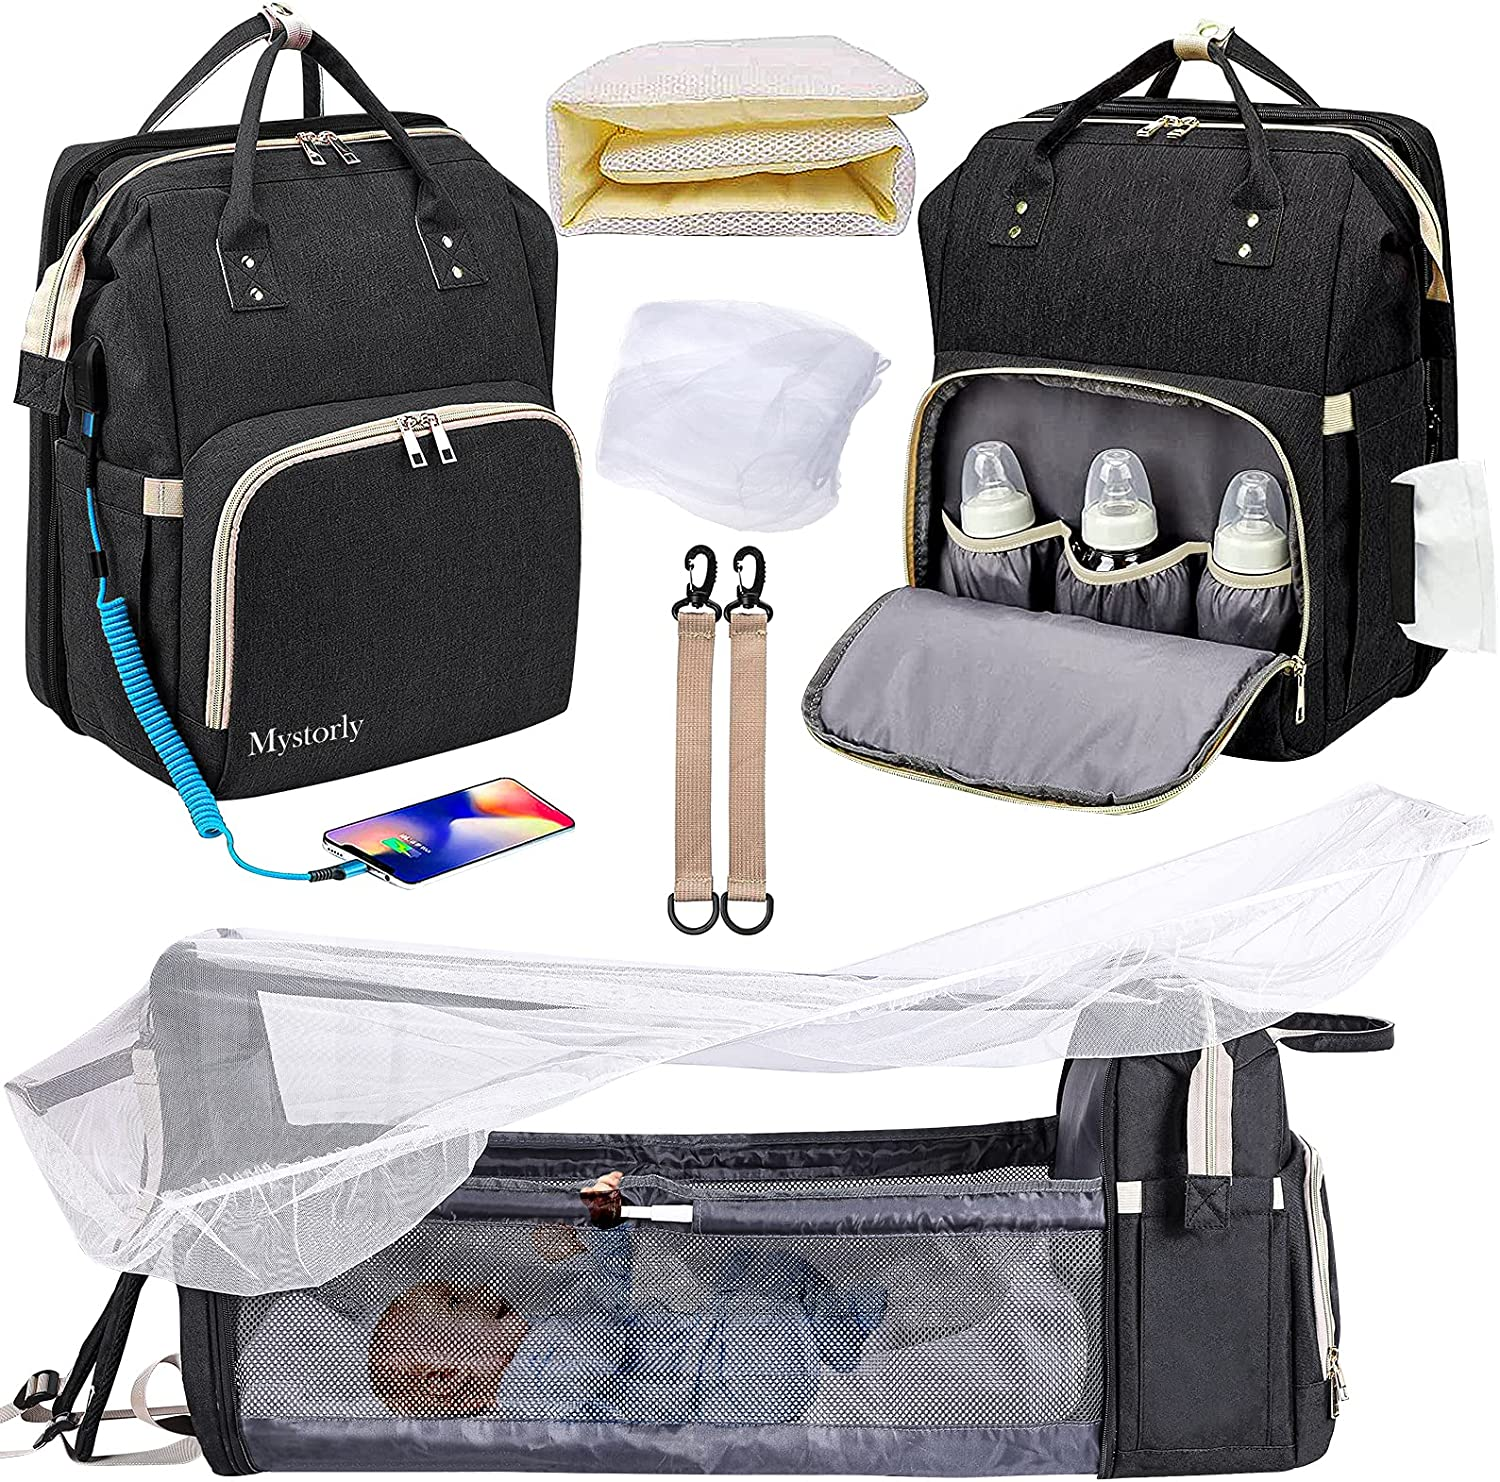 Diaper Bag Backpack with Changing Station 3 in 1 Foldable Baby Bed Backpack with Shade Cloth,Mattress, Mosquito Net Built-in USB & Stroller Straps Large Capacity Waterproof Portable Diaper Bags